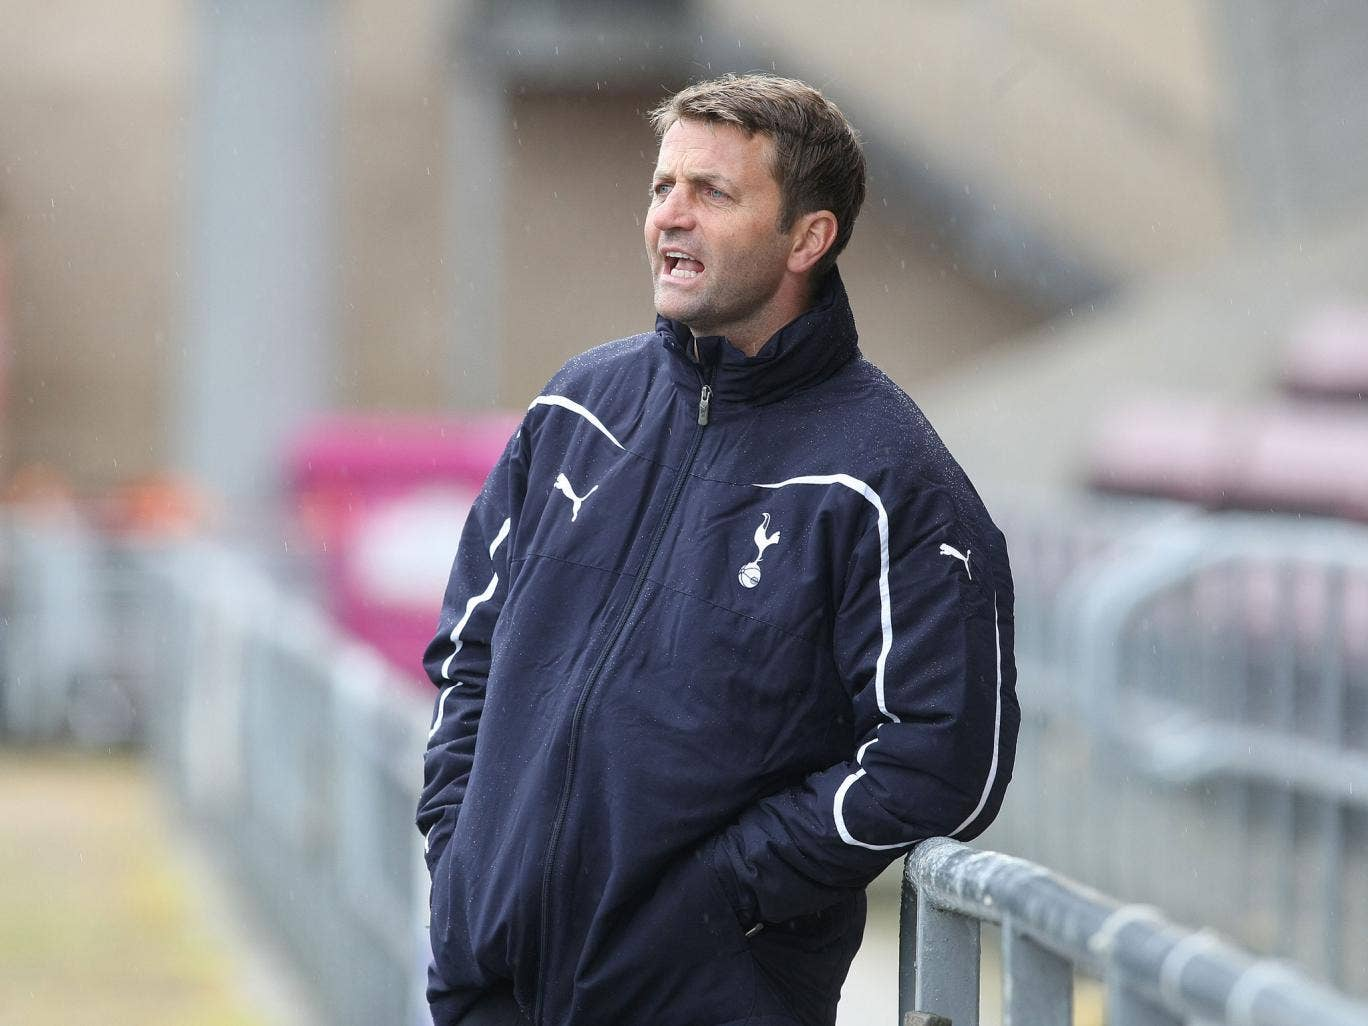 Tim Sherwood has taken temporary charge of Tottenham after andre Villas-Boas was sacked